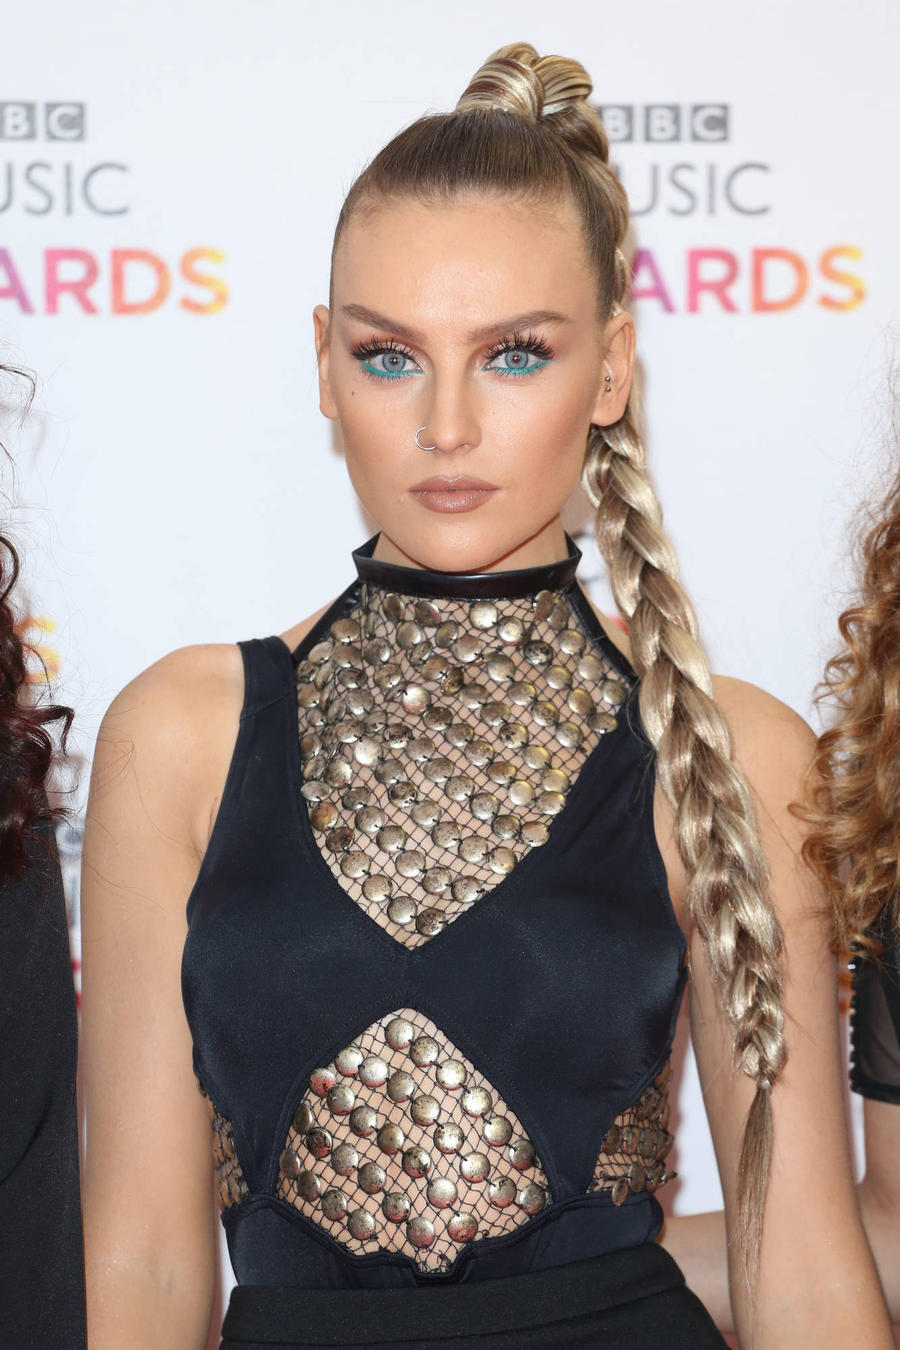 Perrie Edwards Supports Liam Payne And Cheryl Fernandez-versini Romance